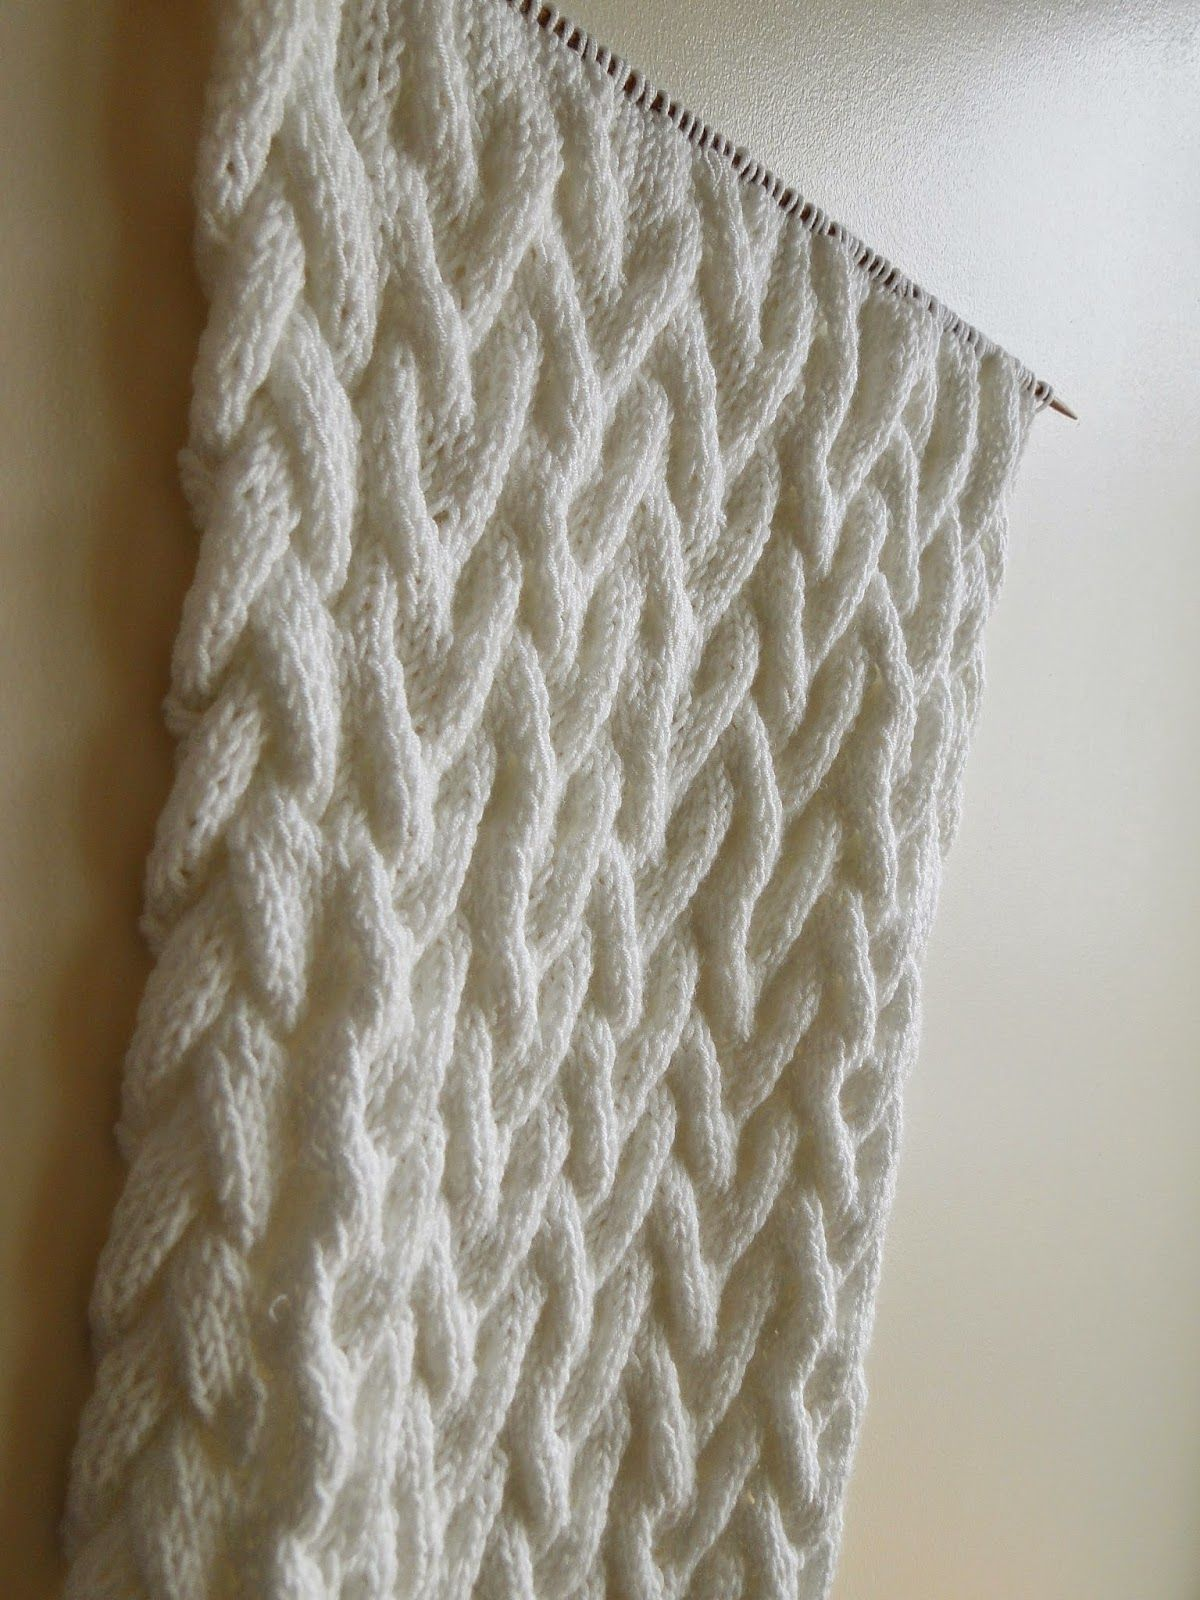 3 Rabbits Patterns: White Cabled Cowl Knitting Pattern | Knit Cowls ...